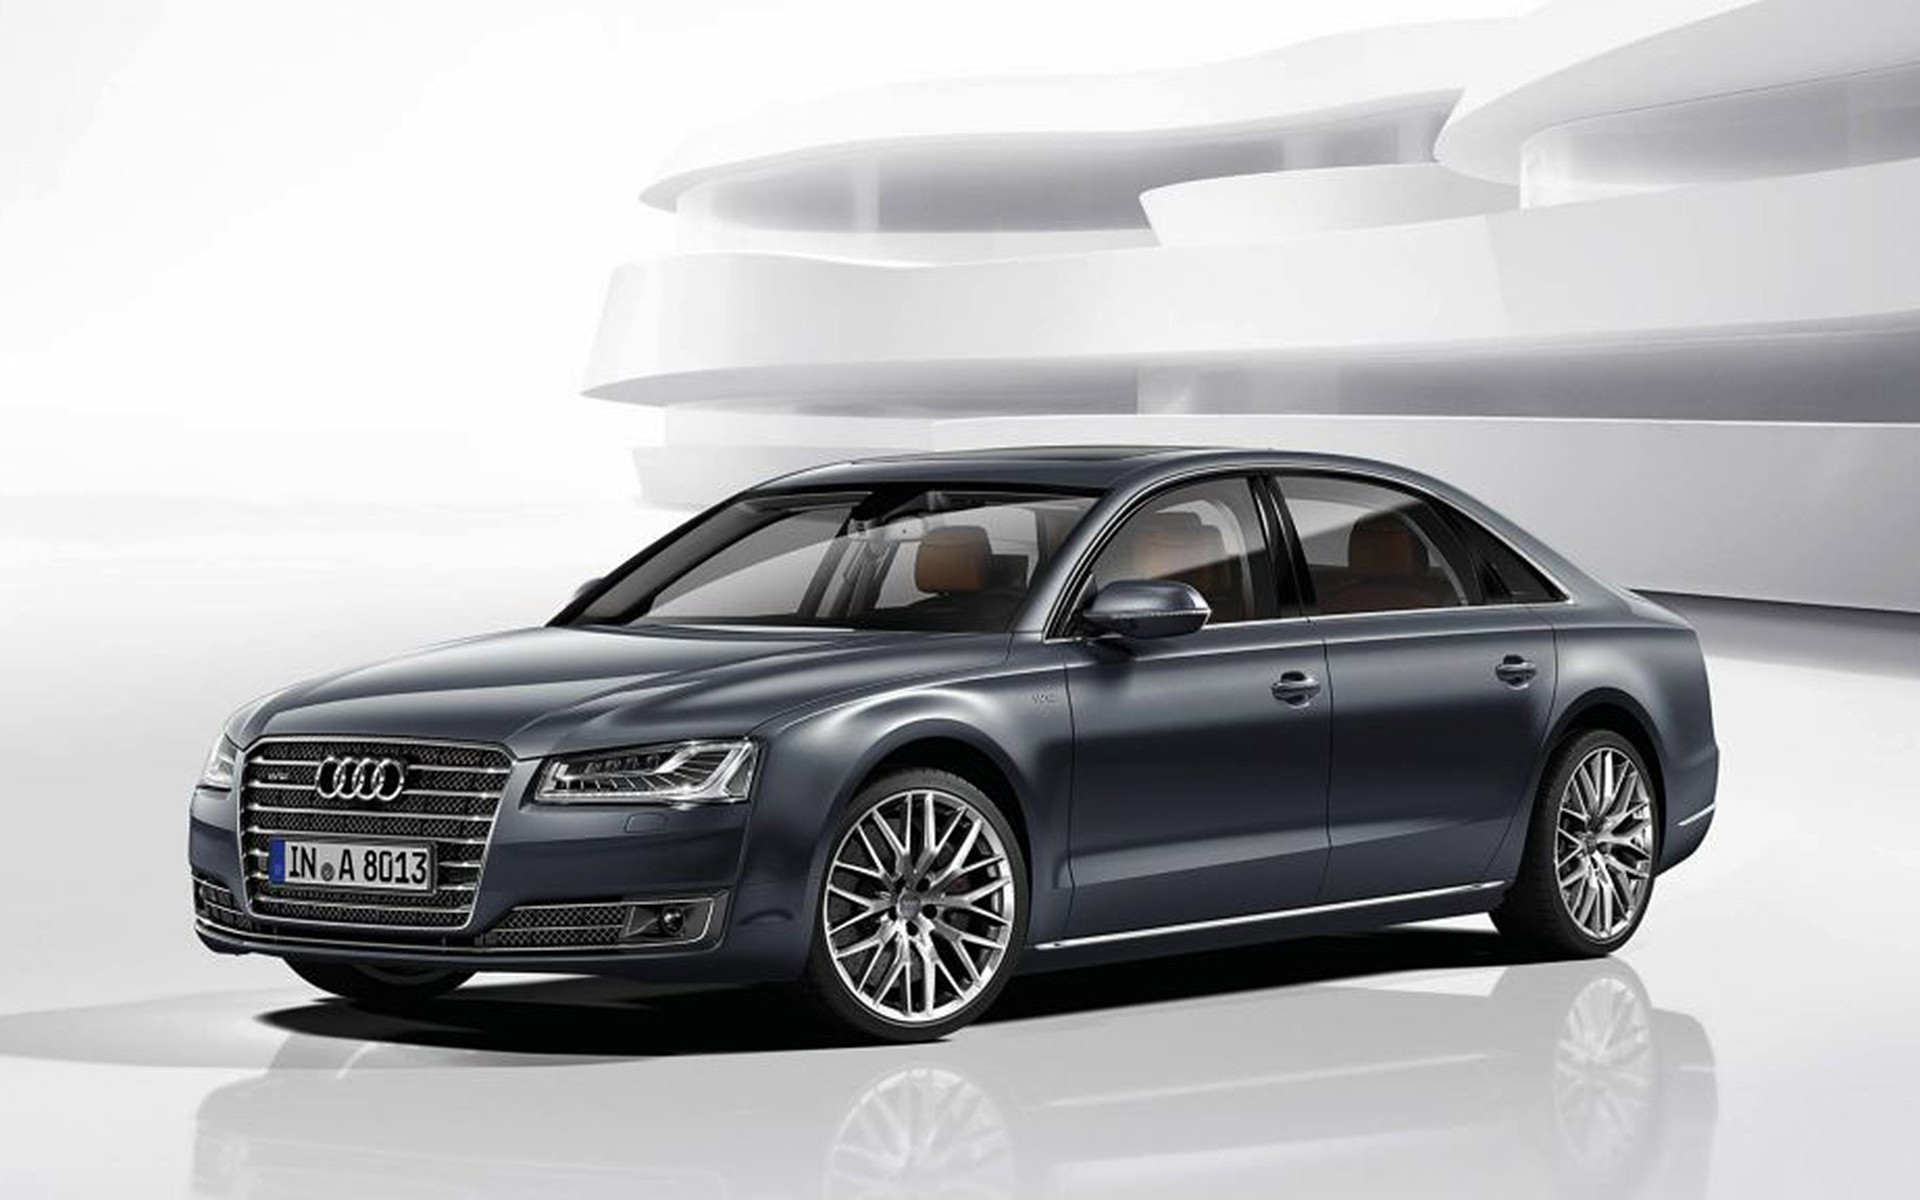 audi a8 2015 wallpapers high quality download free. Black Bedroom Furniture Sets. Home Design Ideas